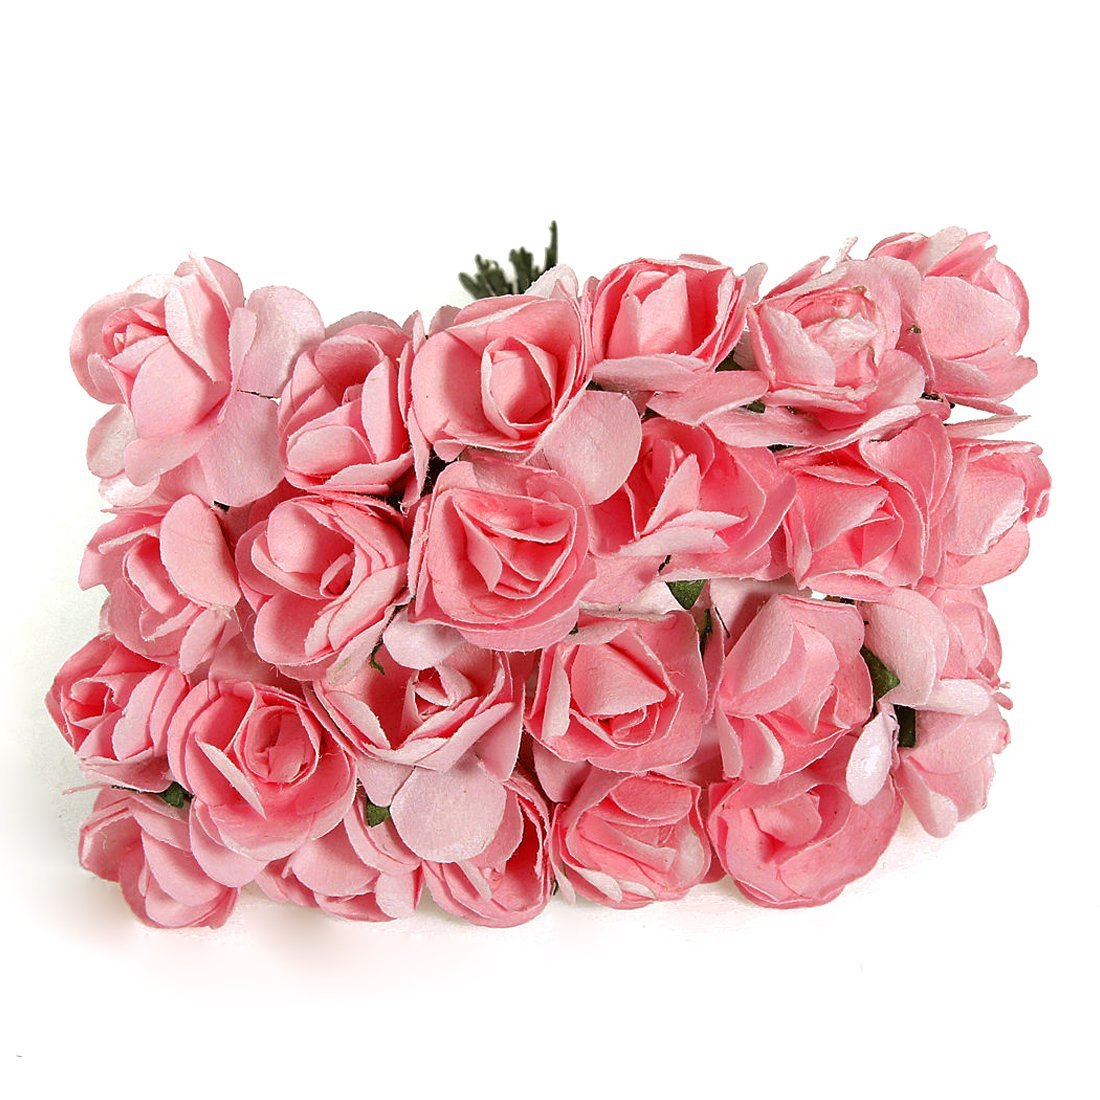 Buy Hot Sale 144 Pcs 15mm Pink Mulberry Paper Flowers Handmade